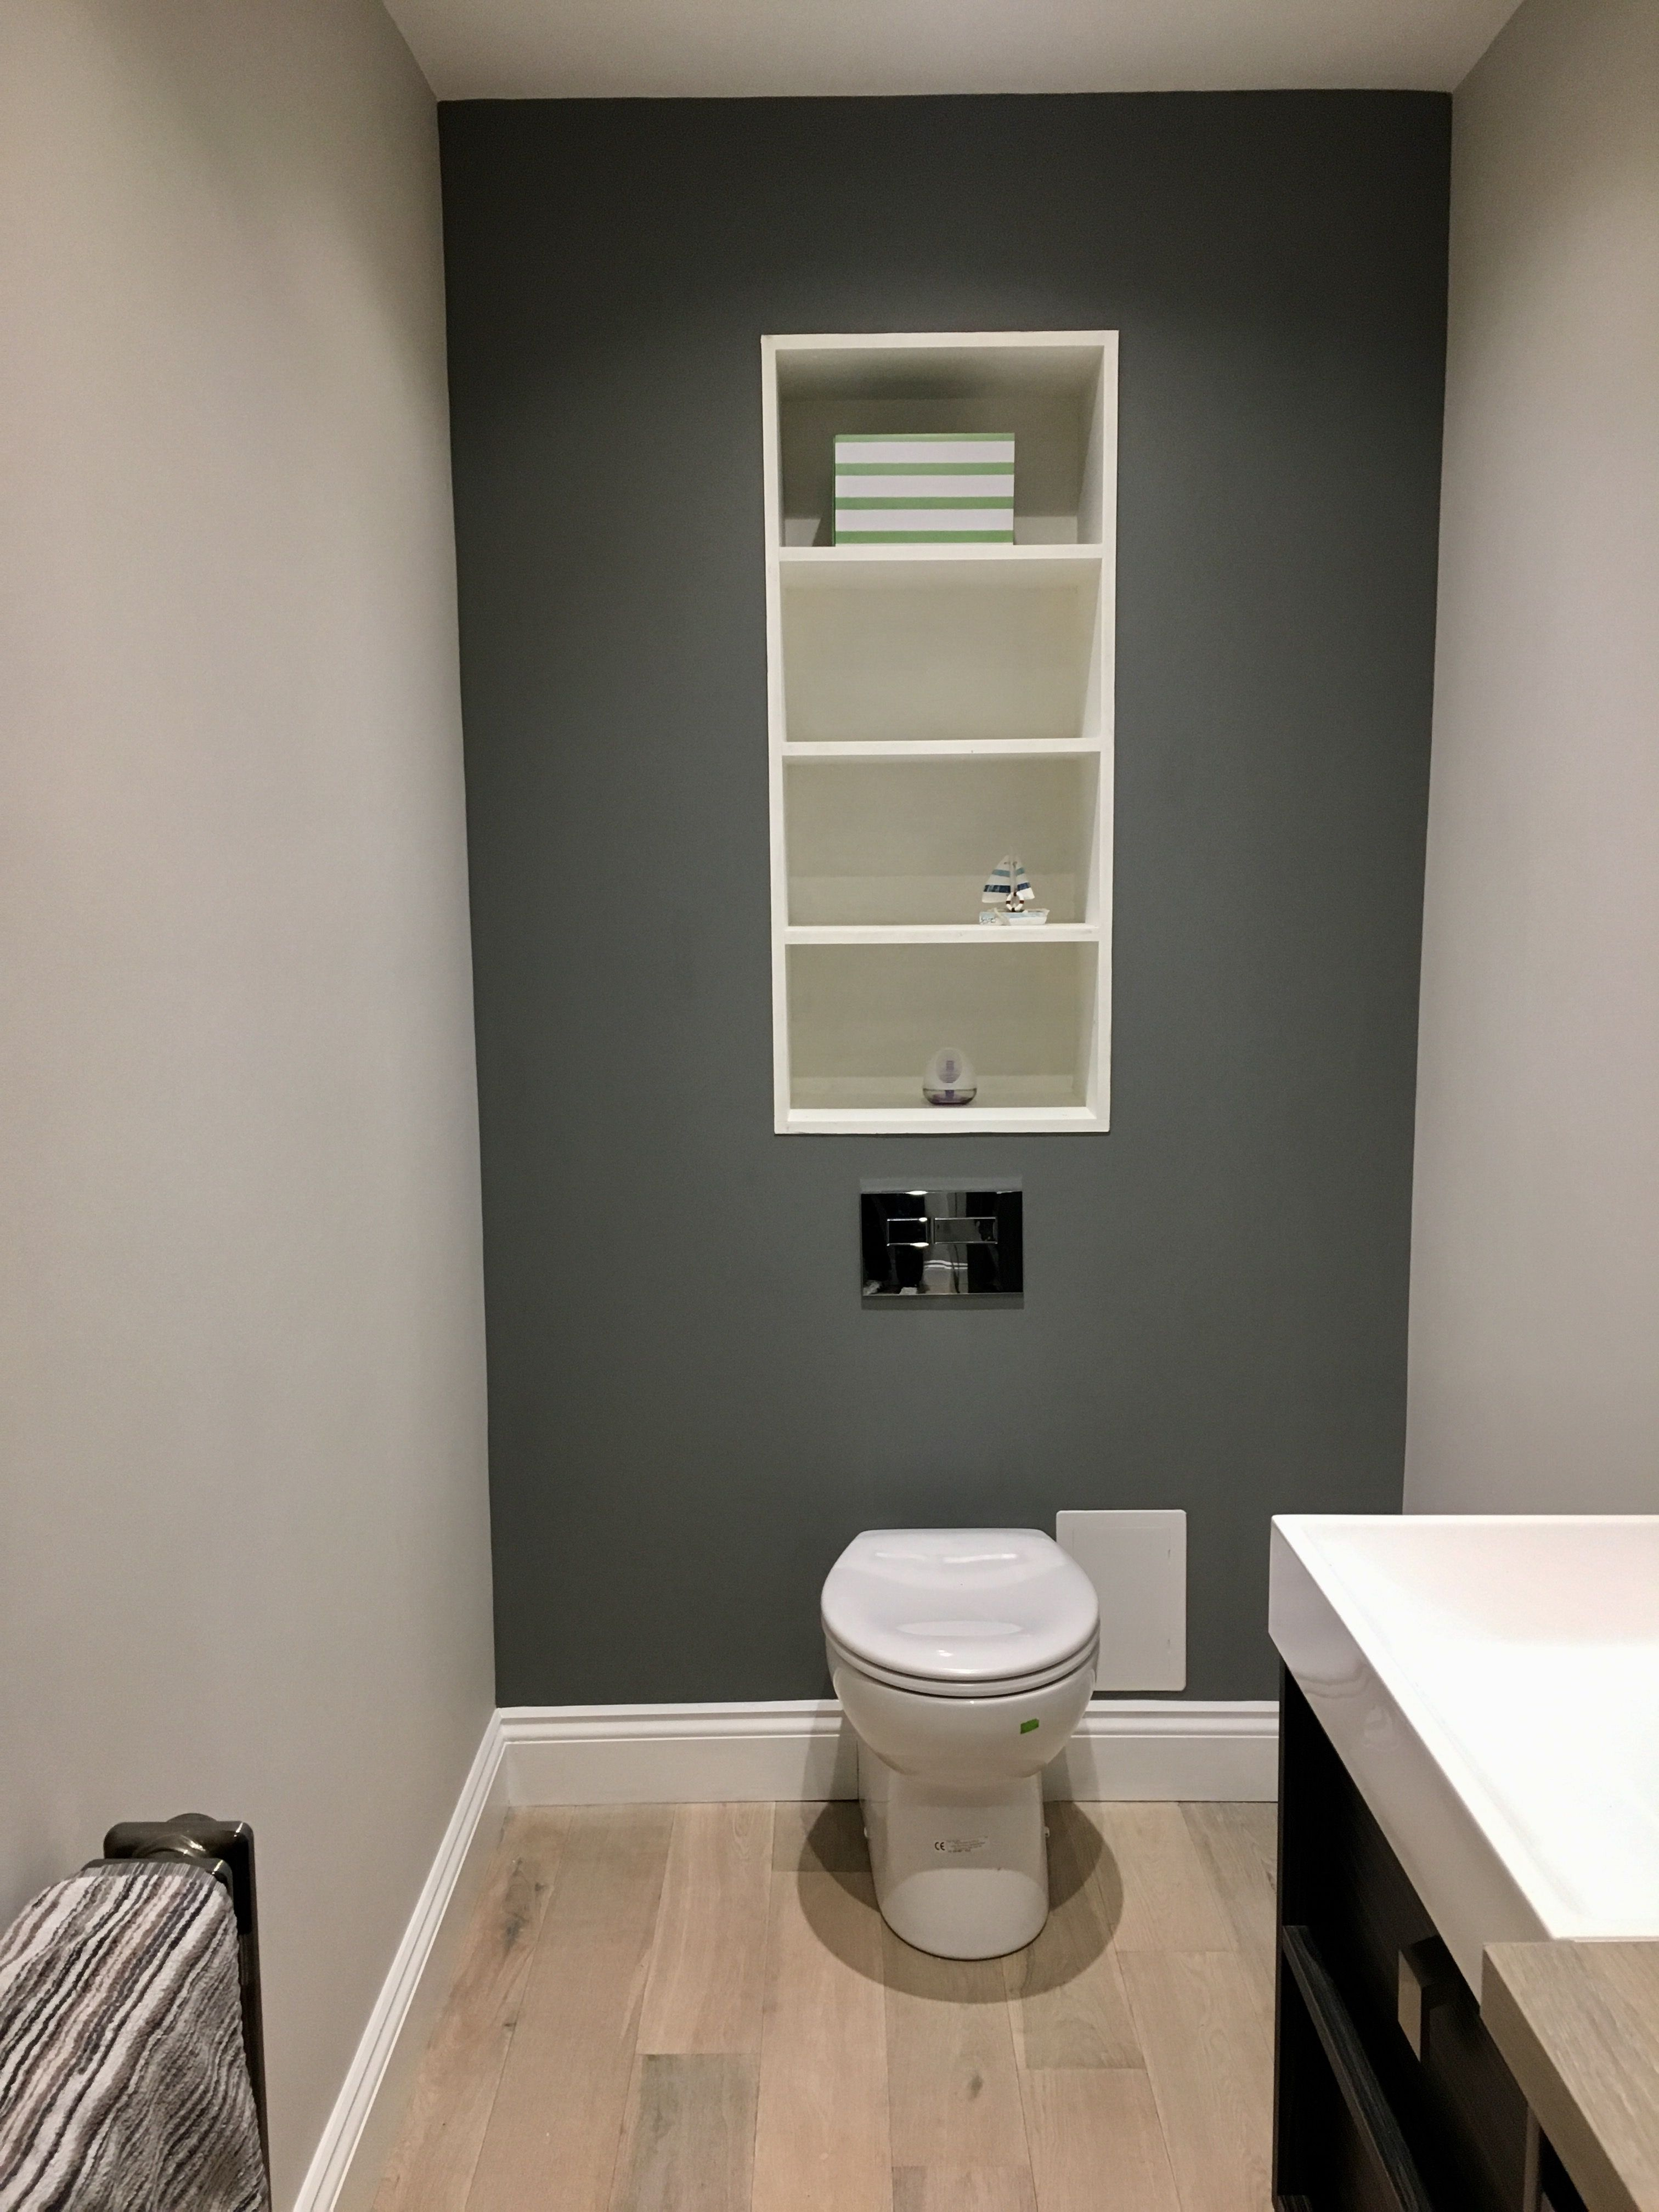 Cloakroom Painted With Farrow And Ball Ammonite And Plummet For The Feature Wall Grey Feature Wall Bathroom Feature Wall Toilet Room Decor